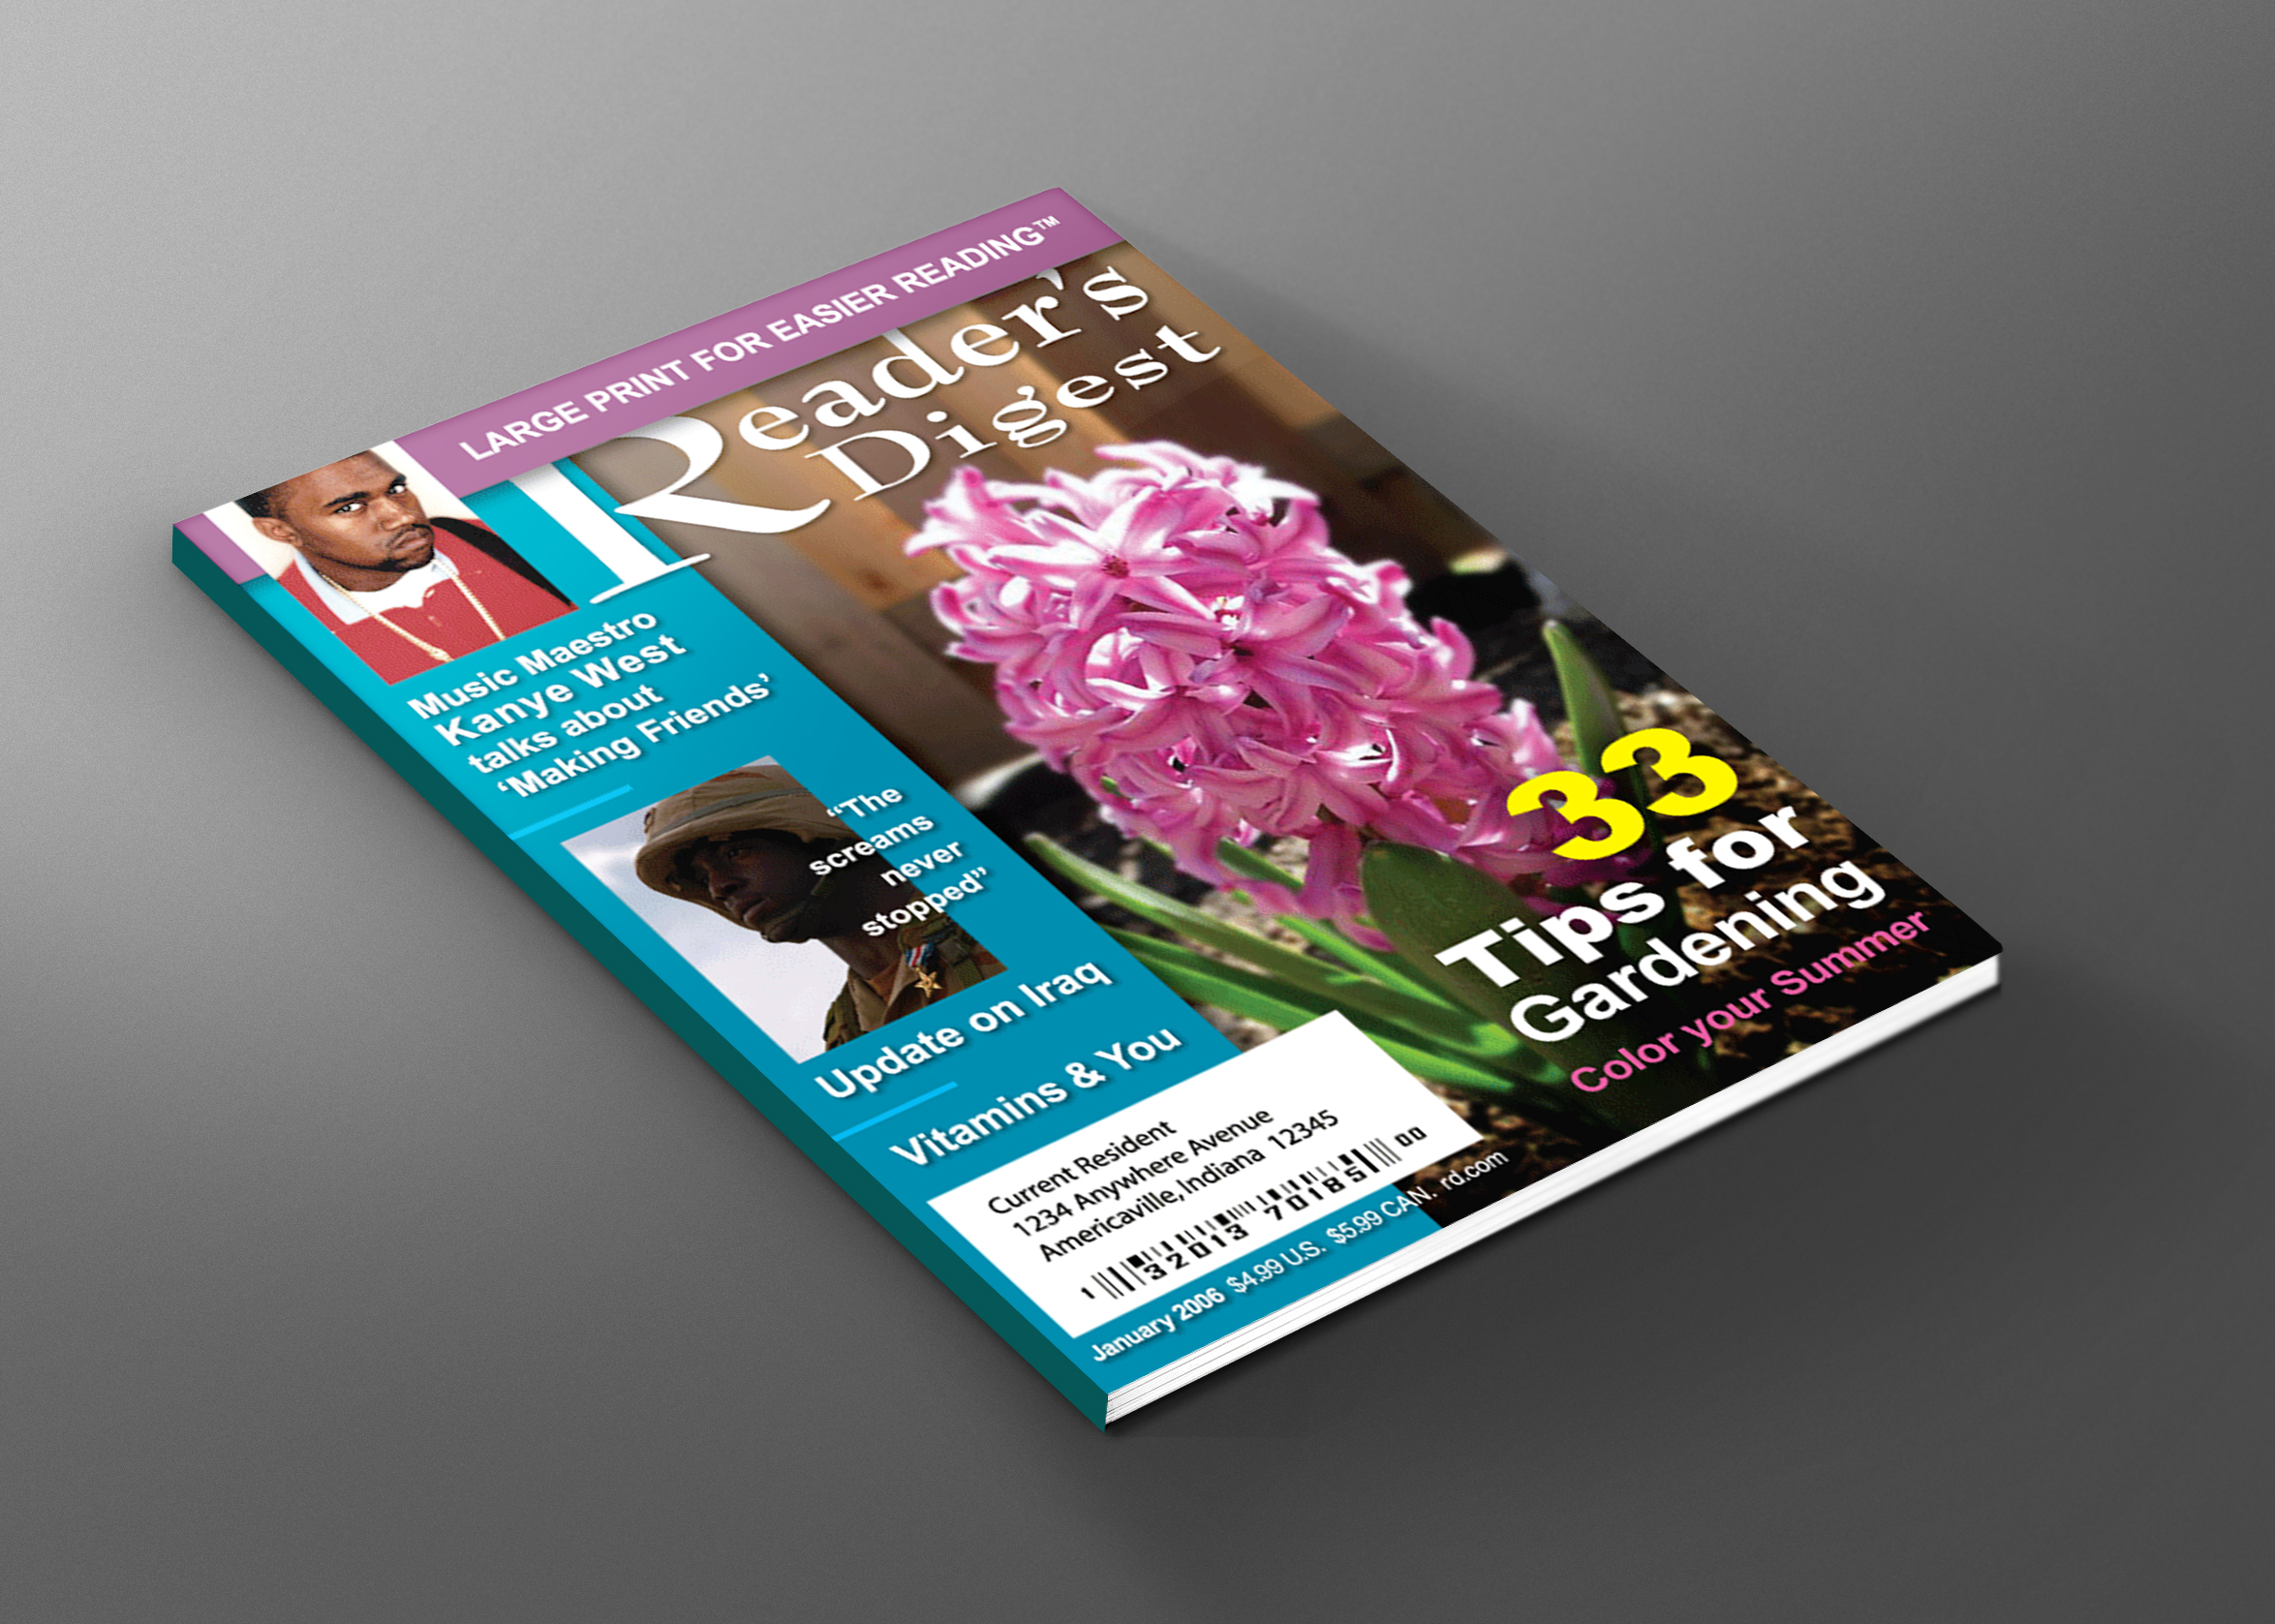 Reader's Digest Cover Design